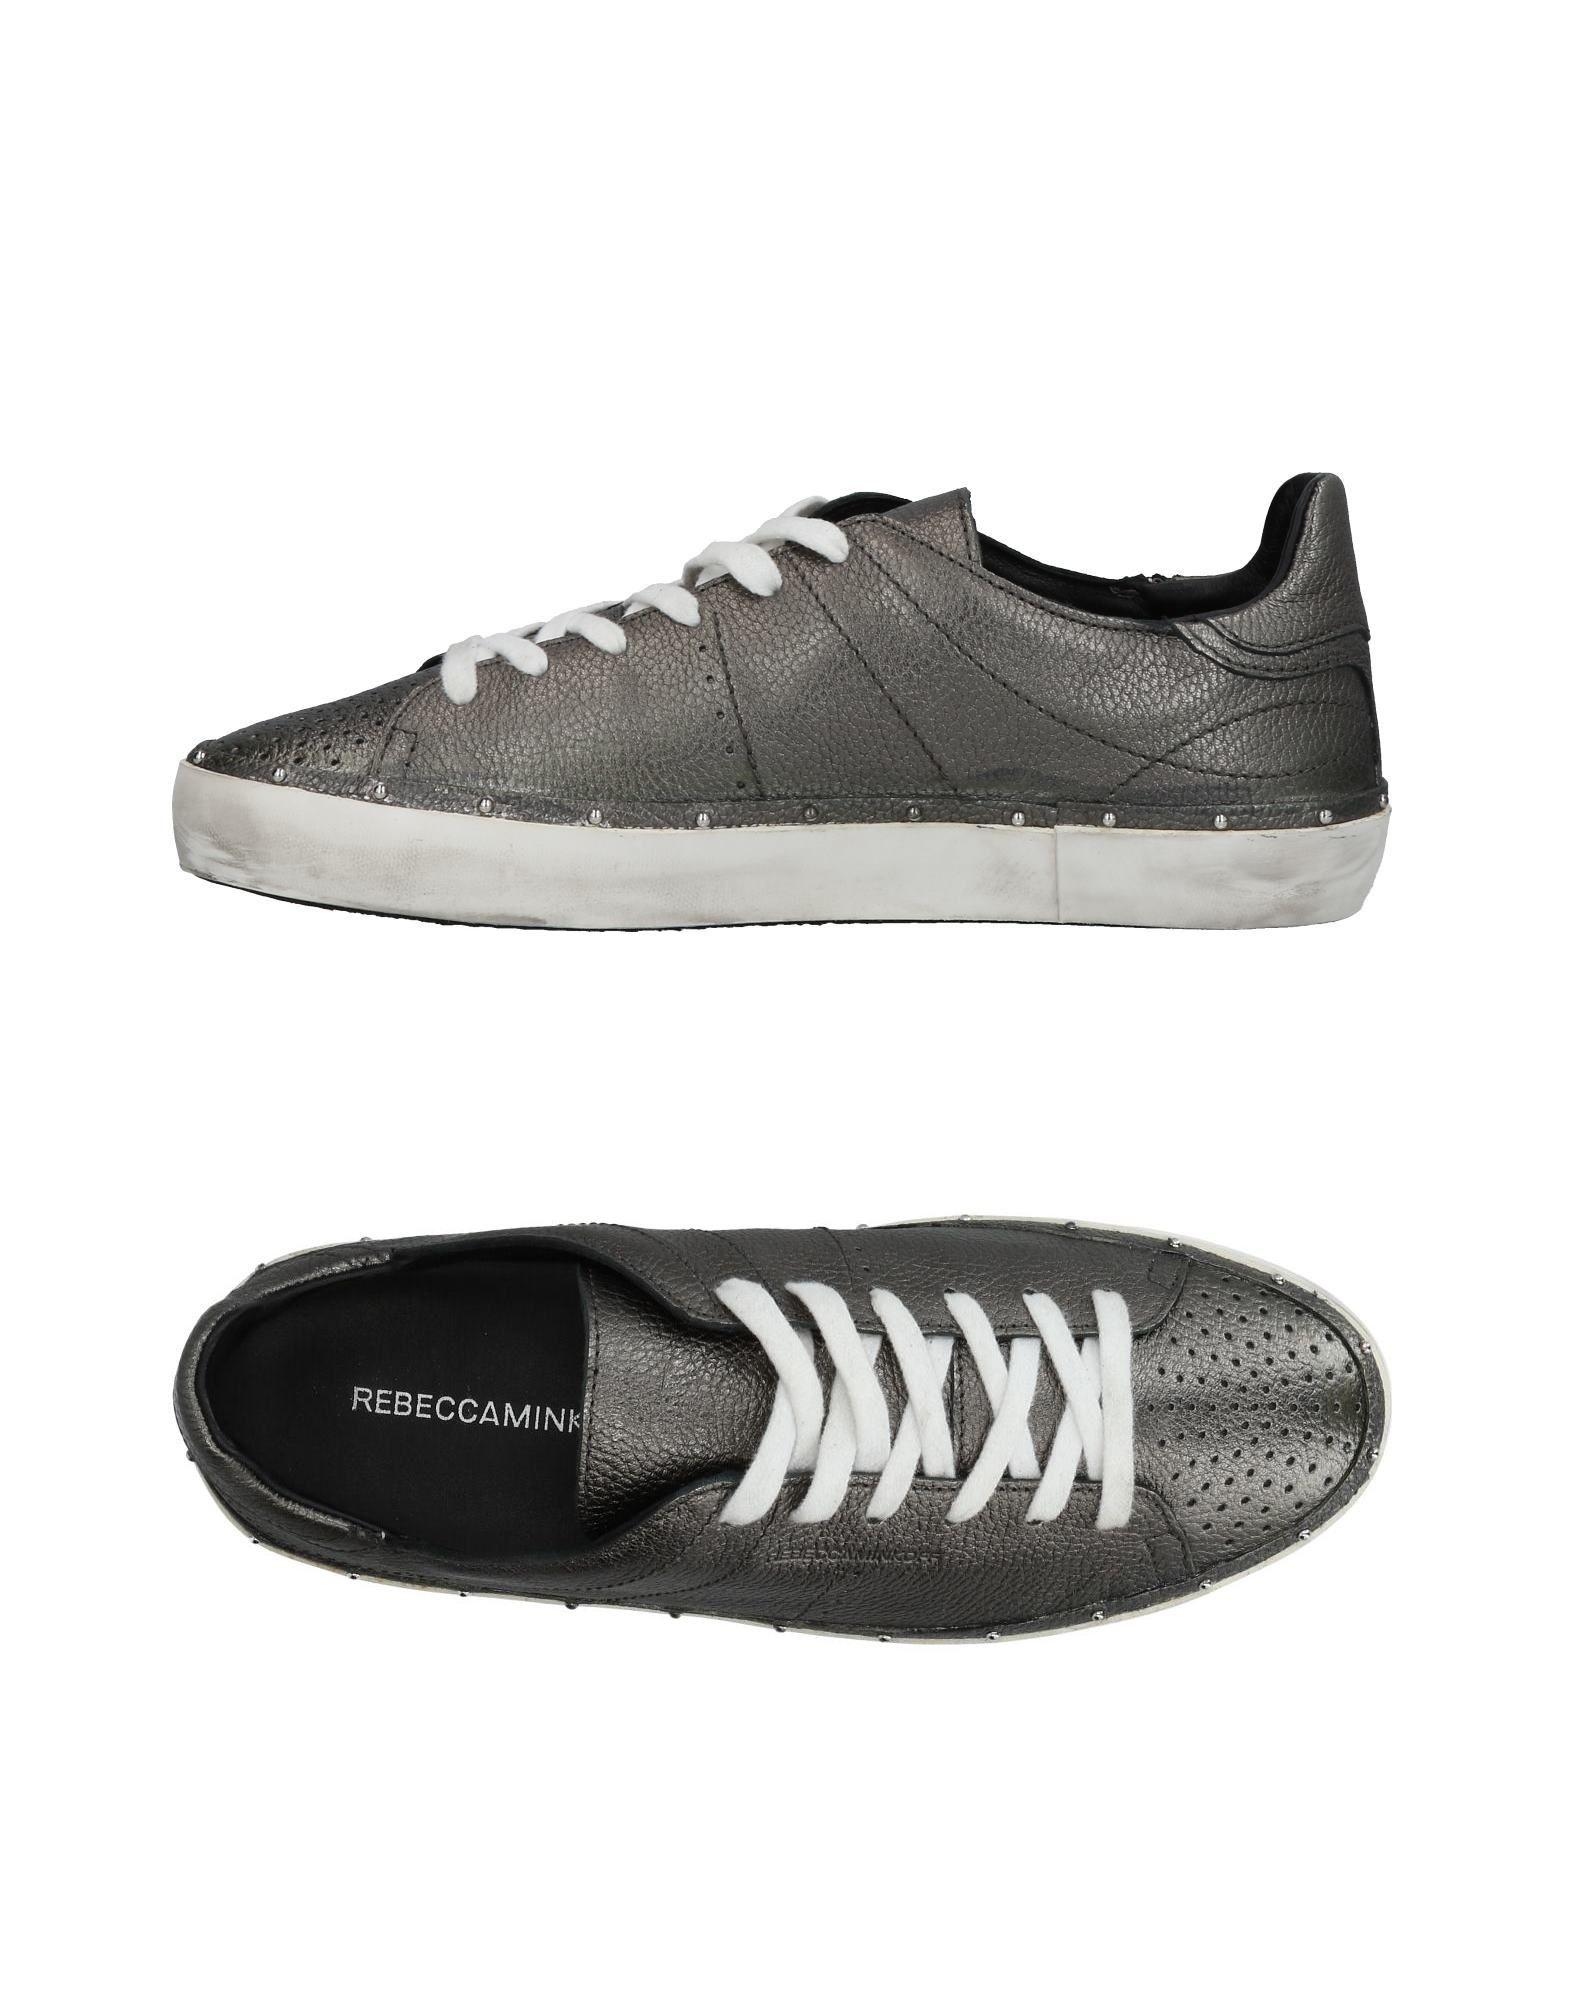 Cheap Shop For FOOTWEAR - Low-tops & sneakers Rebecca Minkoff For Sale Cheap Authentic 0Iki5lFS